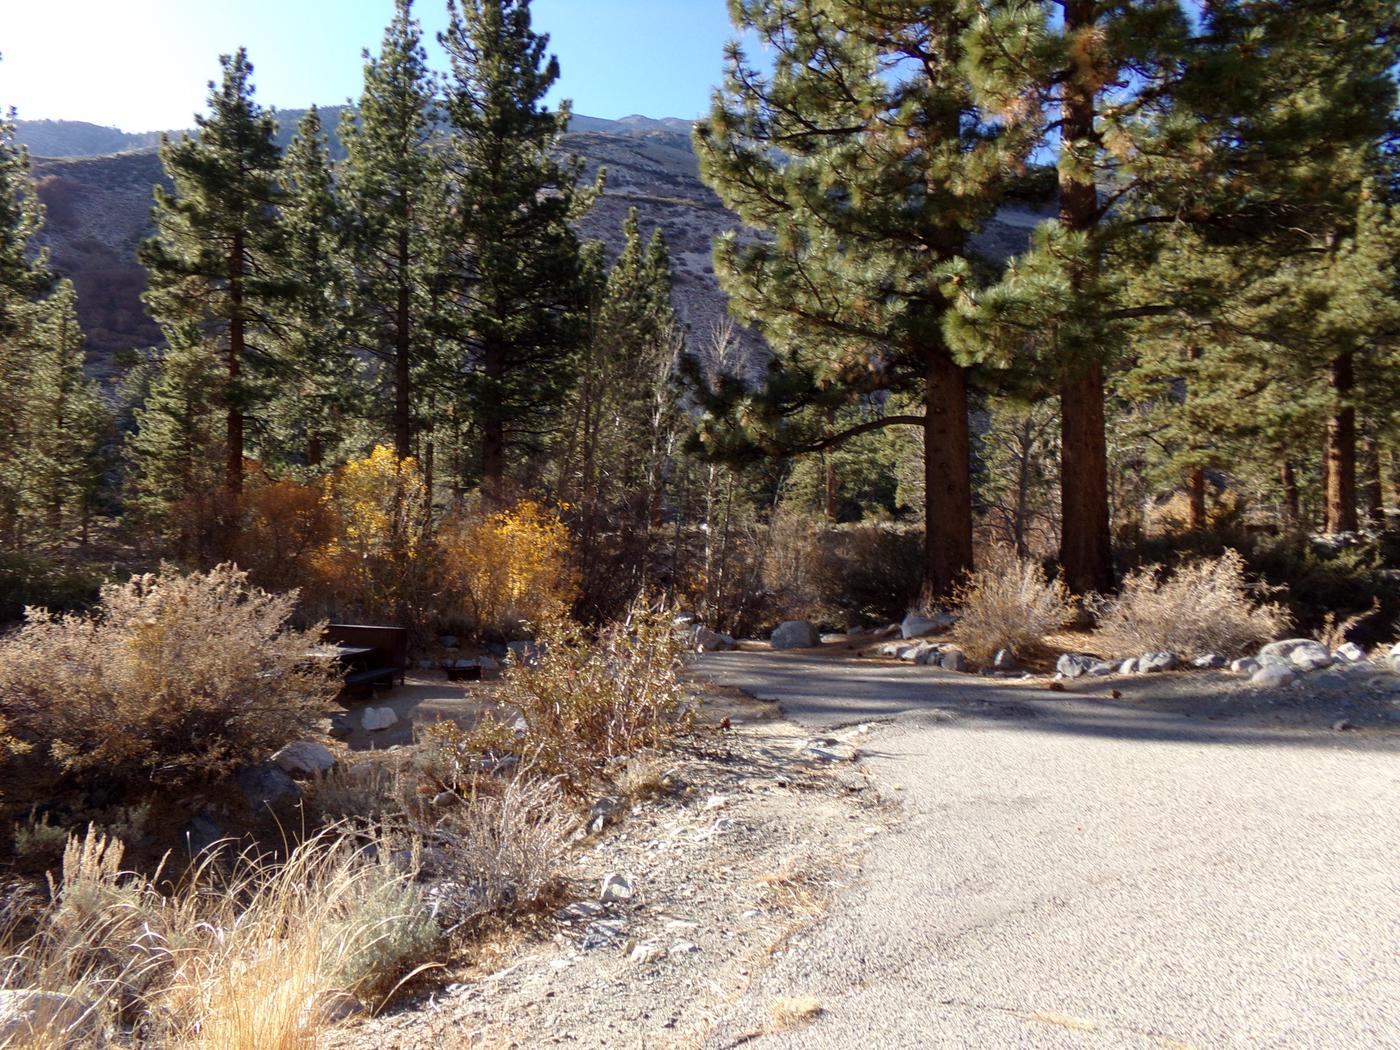 Wooded entrance and parking space for site #06, Upper Sage Flat Campground.